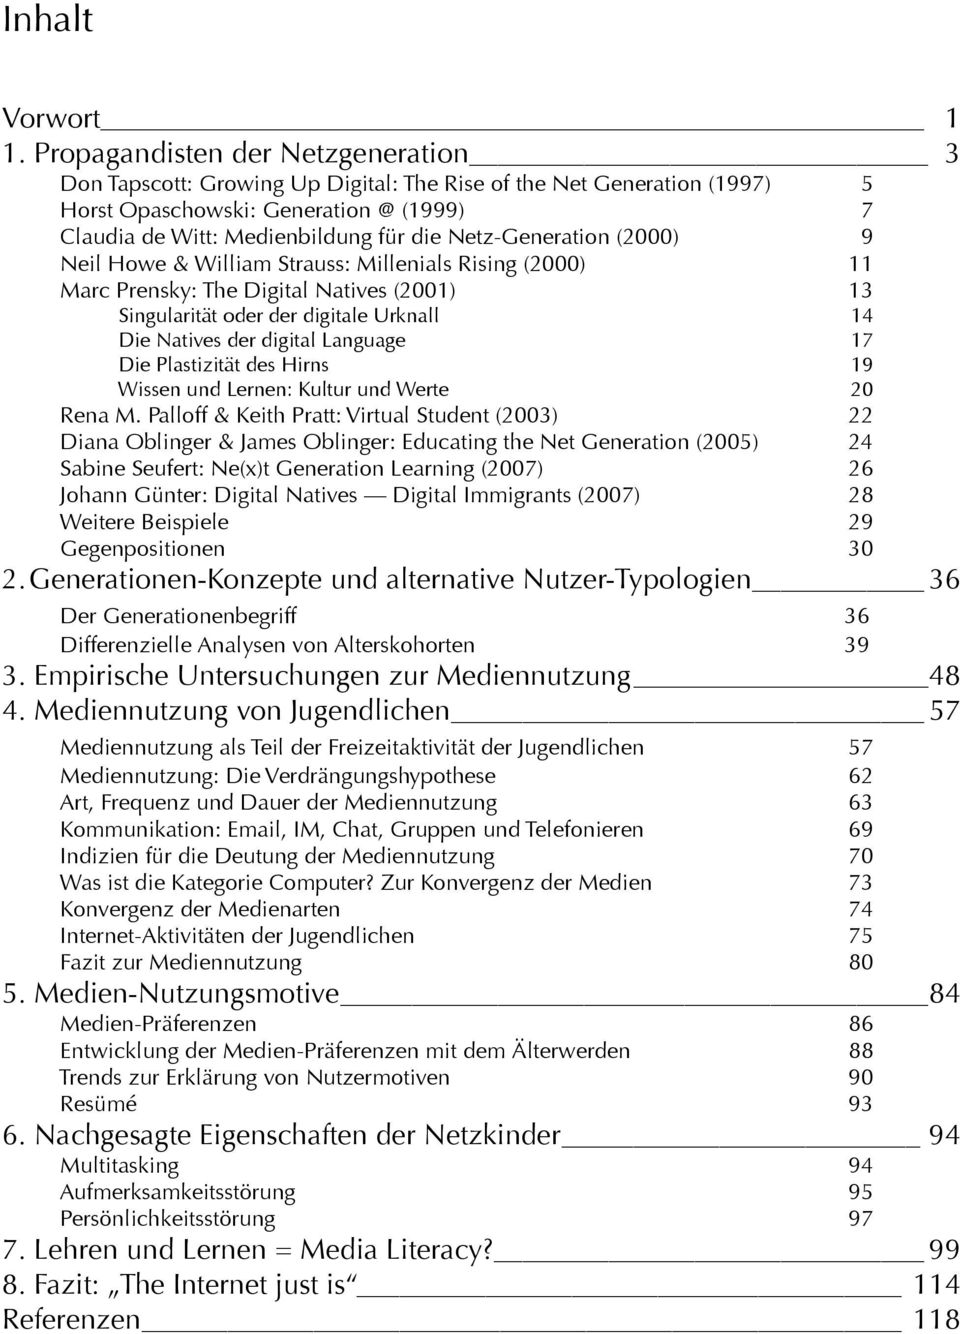 Netz-Generation (2000) 9 Neil Howe & William Strauss: Millenials Rising (2000) 11 Marc Prensky: The Digital Natives (2001) 13 Singularität oder der digitale Urknall 14 Die Natives der digital